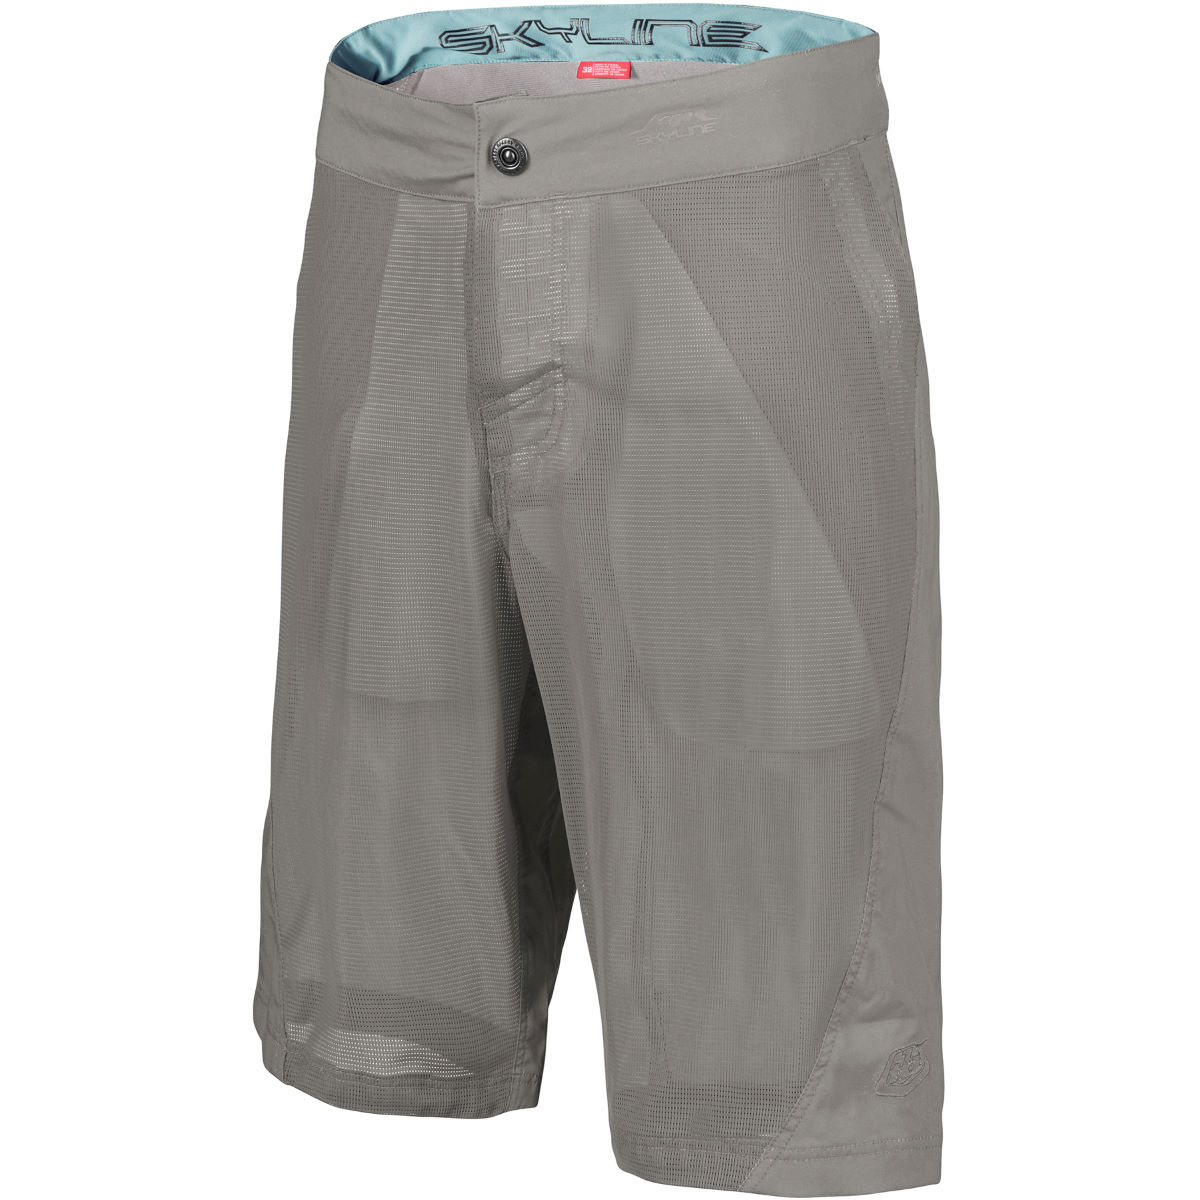 Short Troy Lee Designs Skyline Air - 30 Gray Shorts VTT